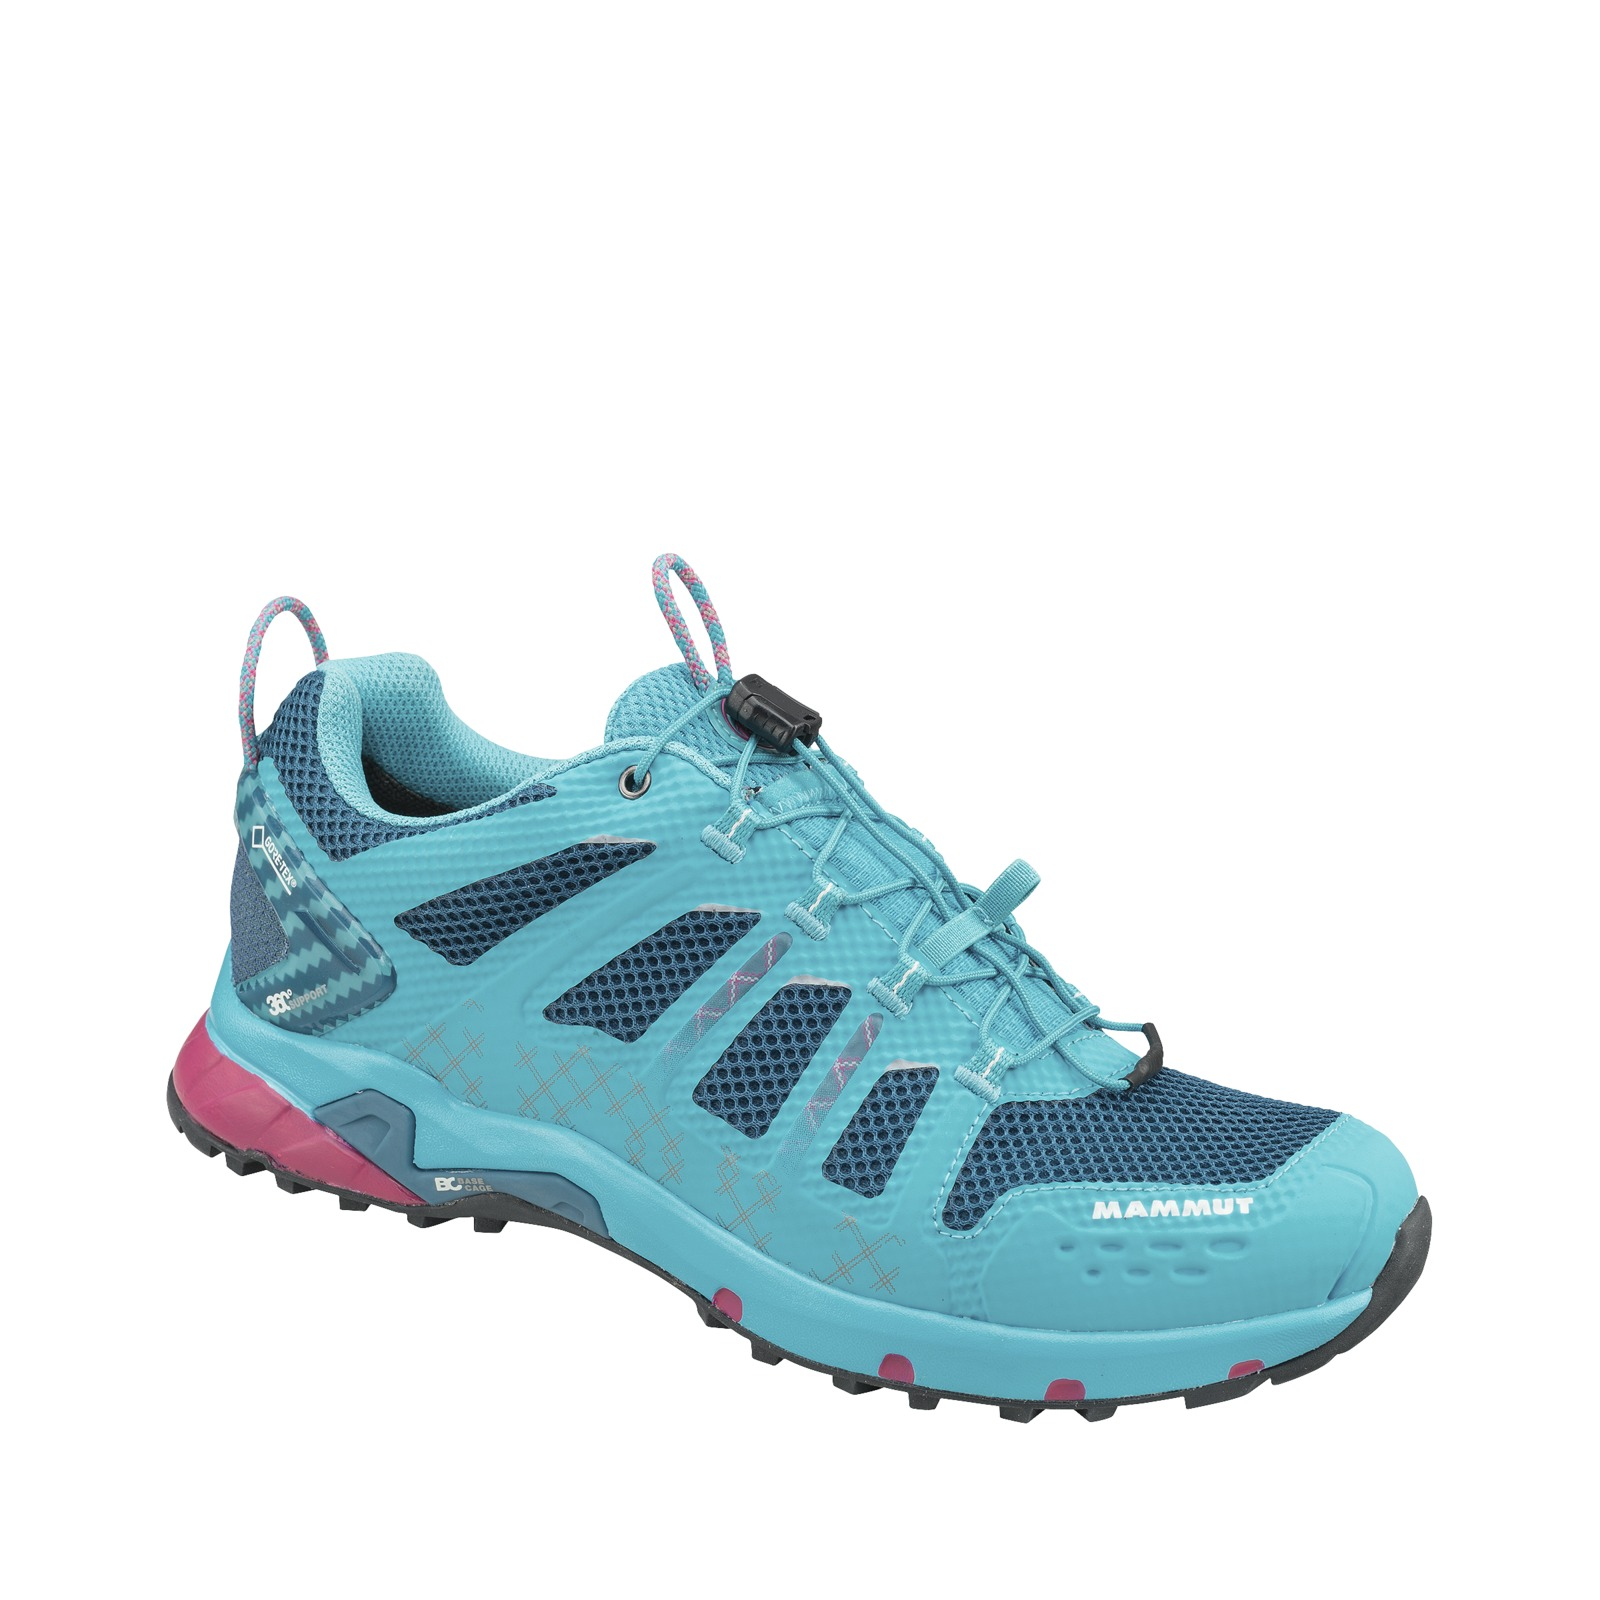 MAMMUT T AENERGY LOW GTX® WOMEN